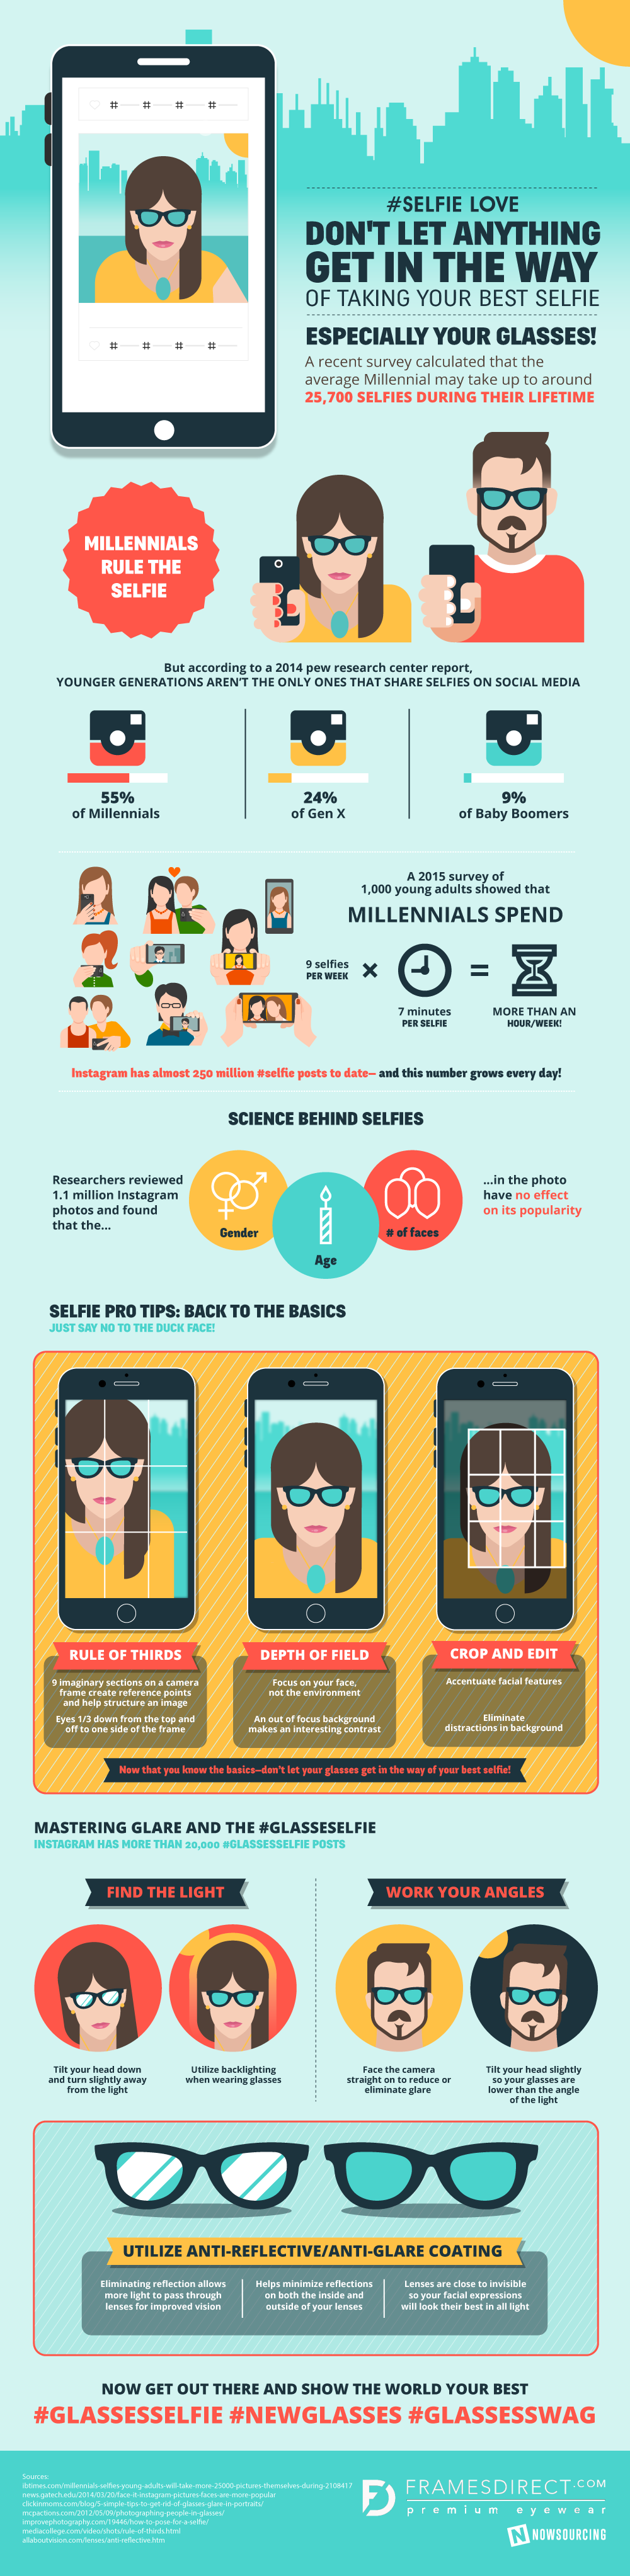 Don't Let Anything Get In The Way Of Taking Your Best Selfie